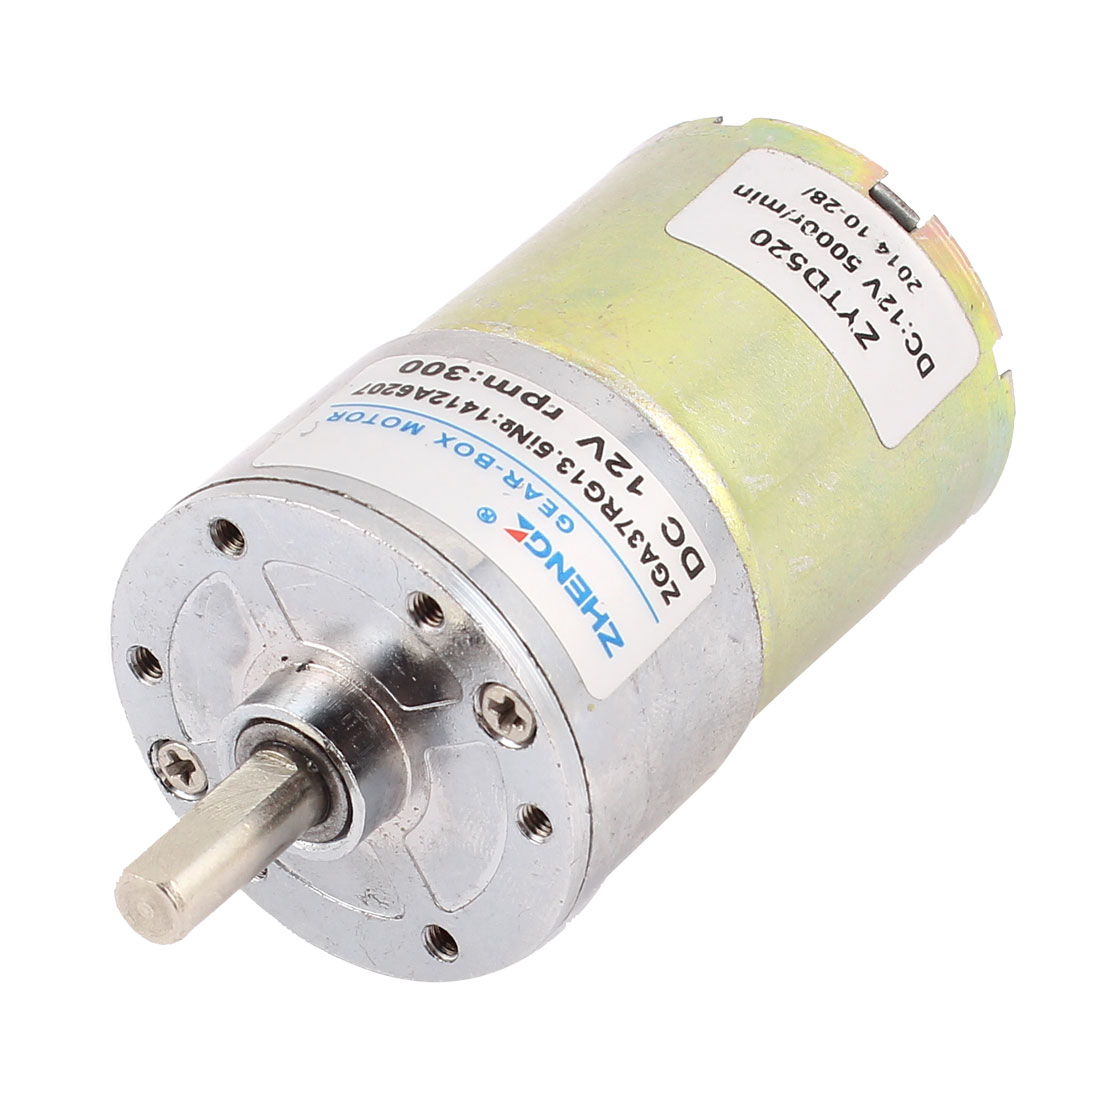 DC 12V 300 RPM 6mm Shaft High Torque Gear-Box Electric Motor